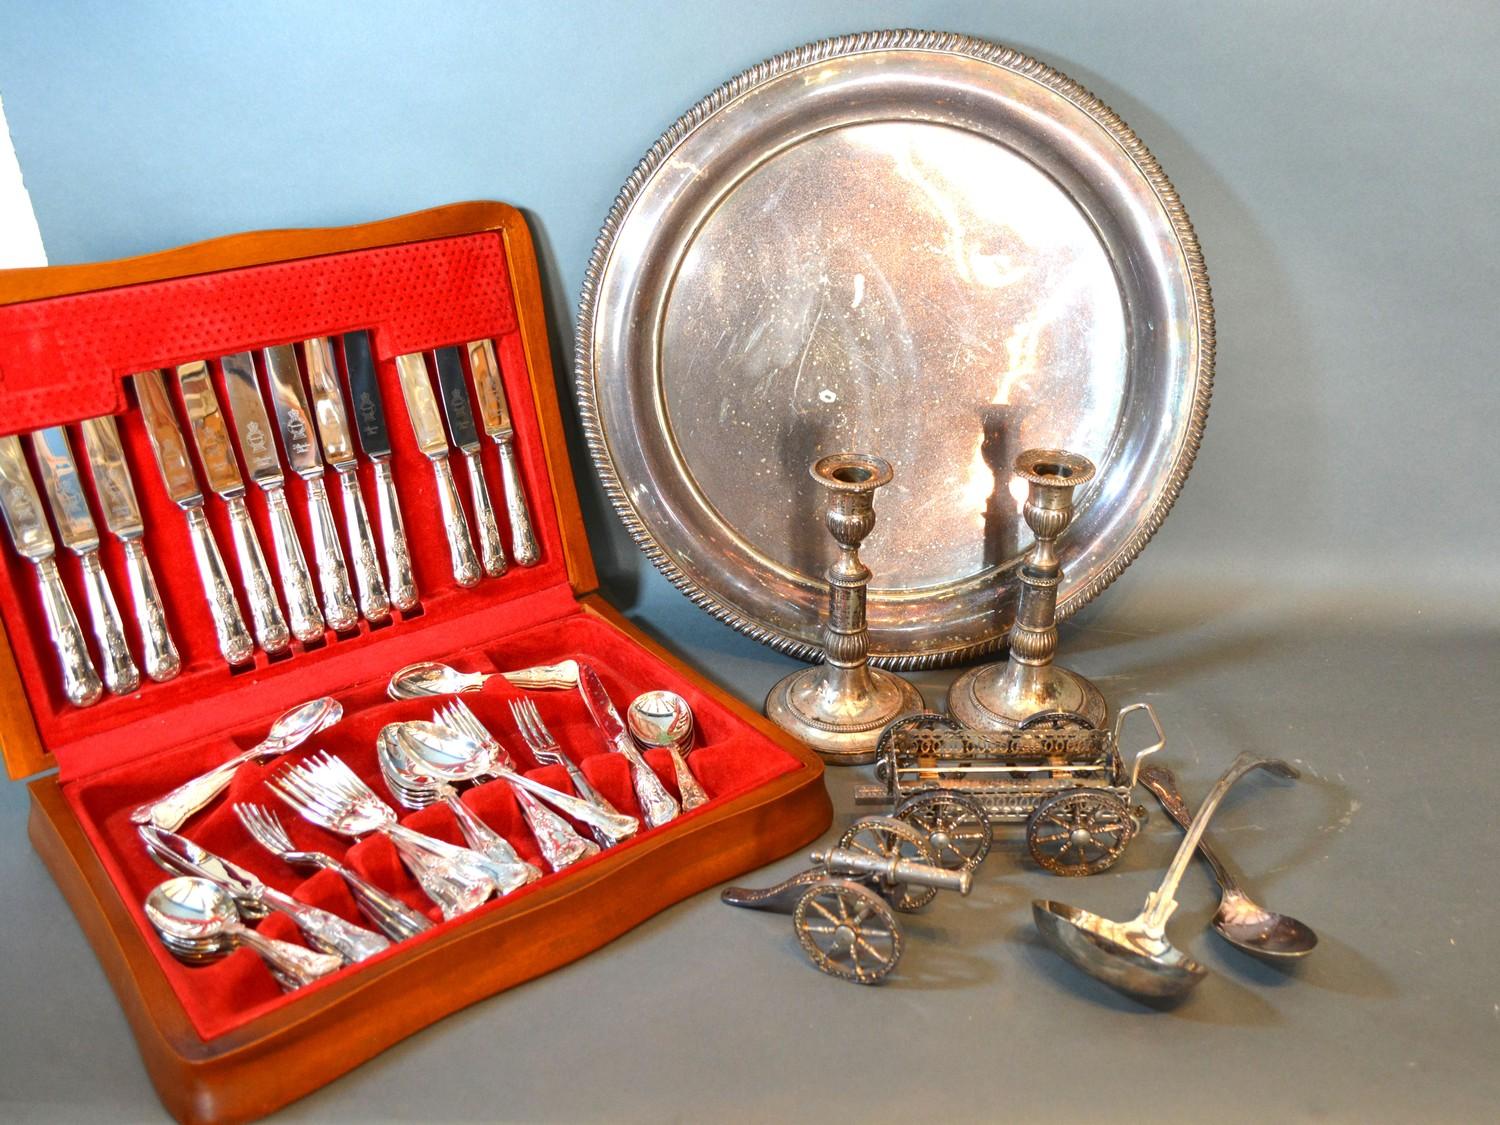 A pair of silver plated telescopic candlesticks together with various flatware and other silver